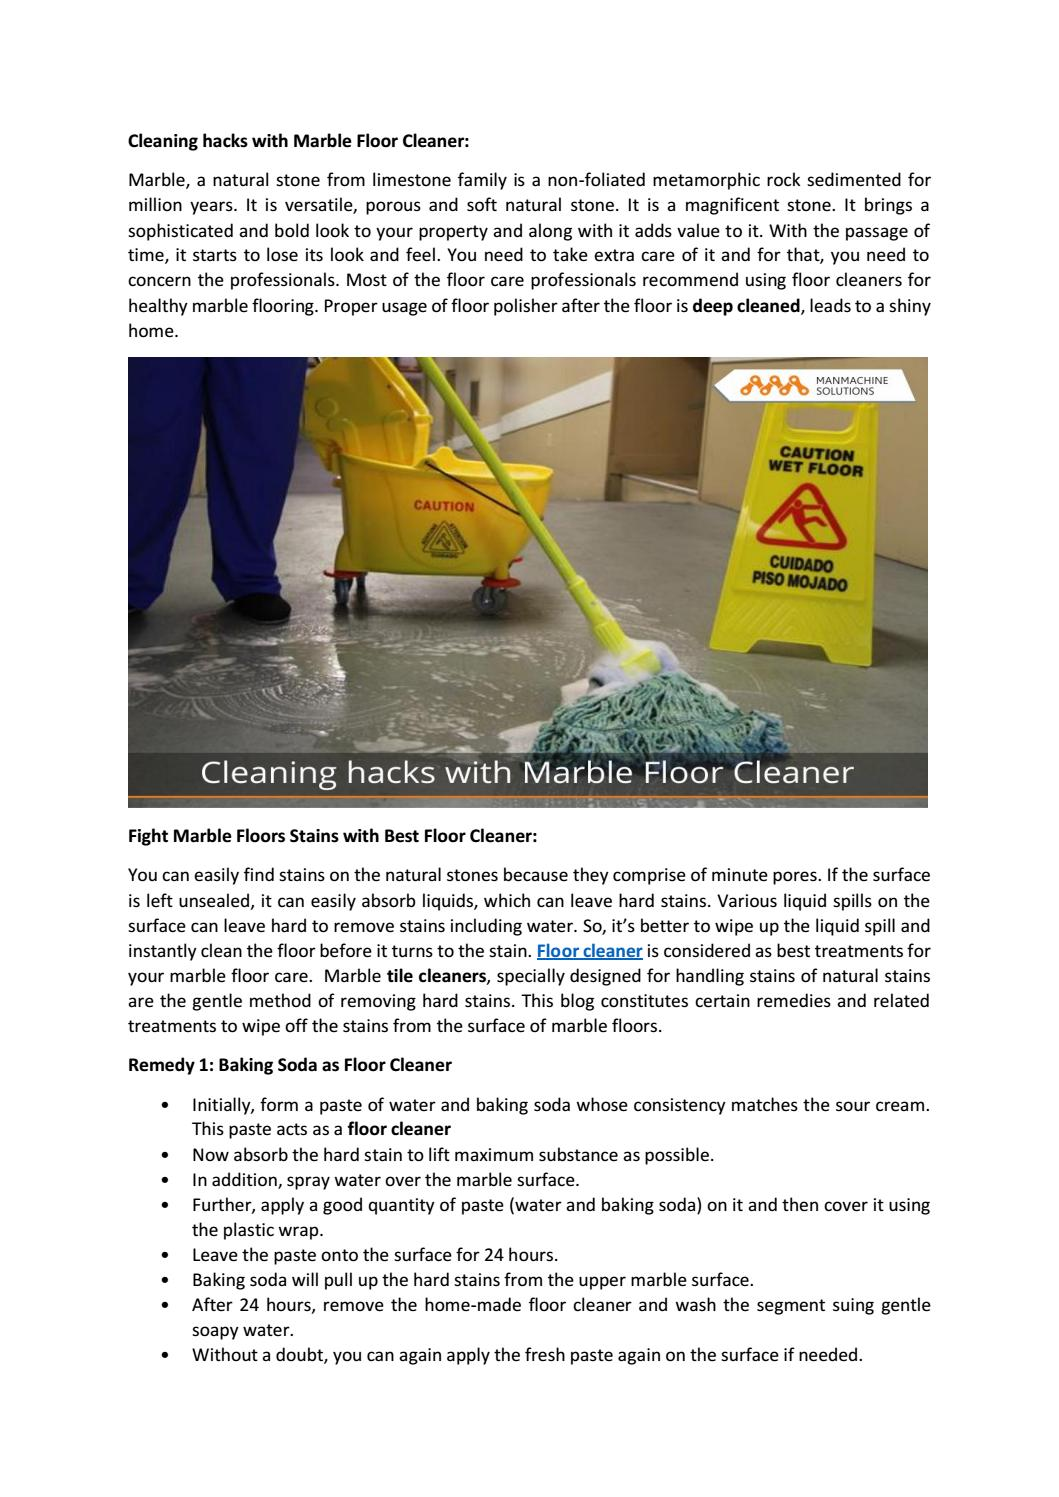 Cleaning Hacks With Marble Floor Cleaner By Manmachine Solutions Issuu